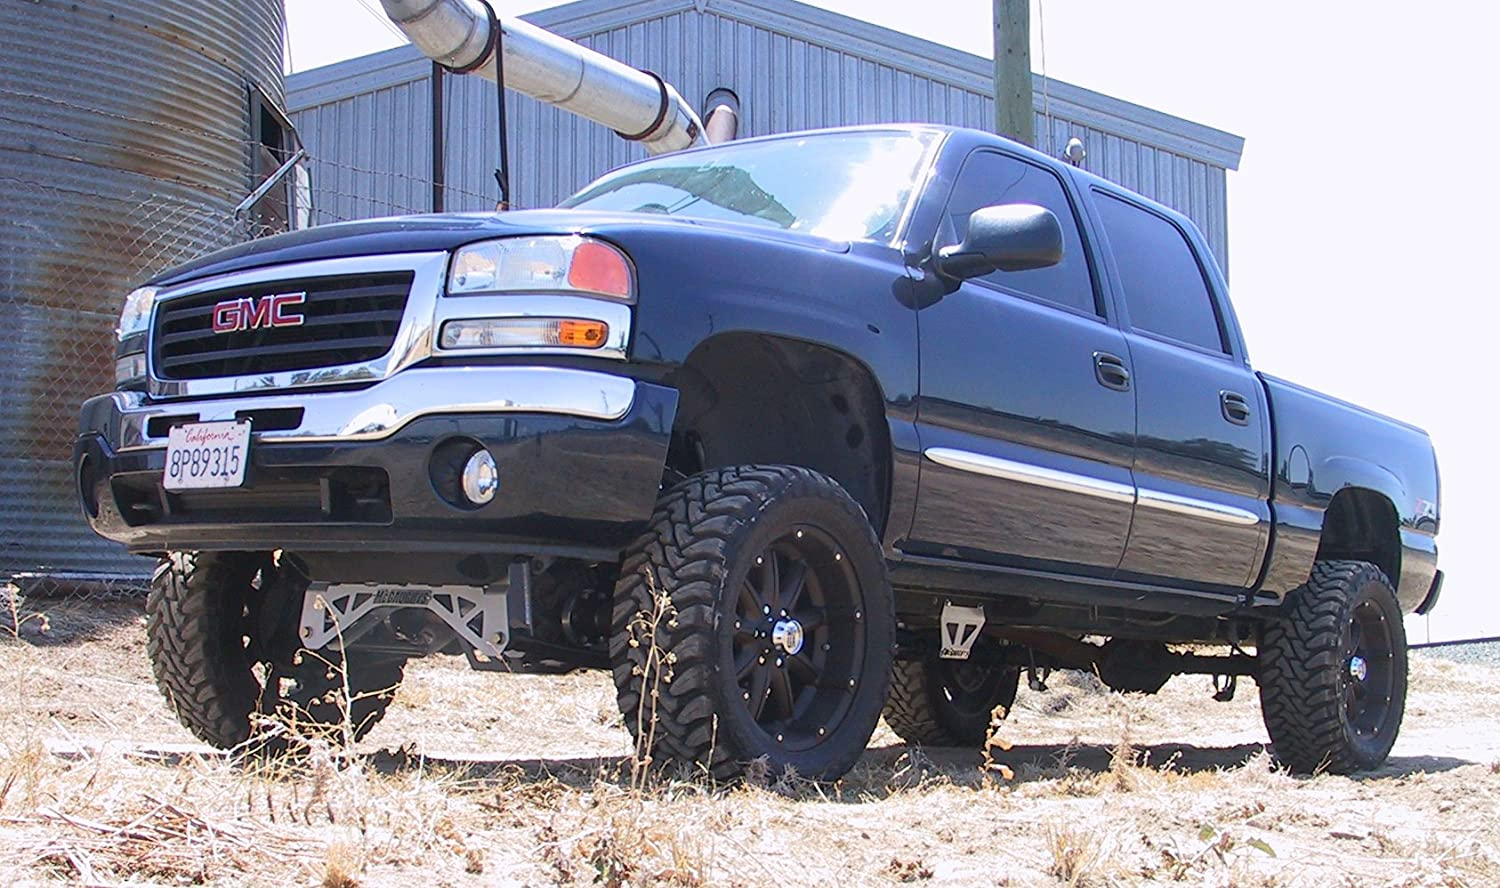 6 Inch Lift Kit For Chevy 1500 4wd >> Mcgaughys 7 Lift Kit 1999 2006 Chevy Silverado Gmc Sierra 4wd 50000